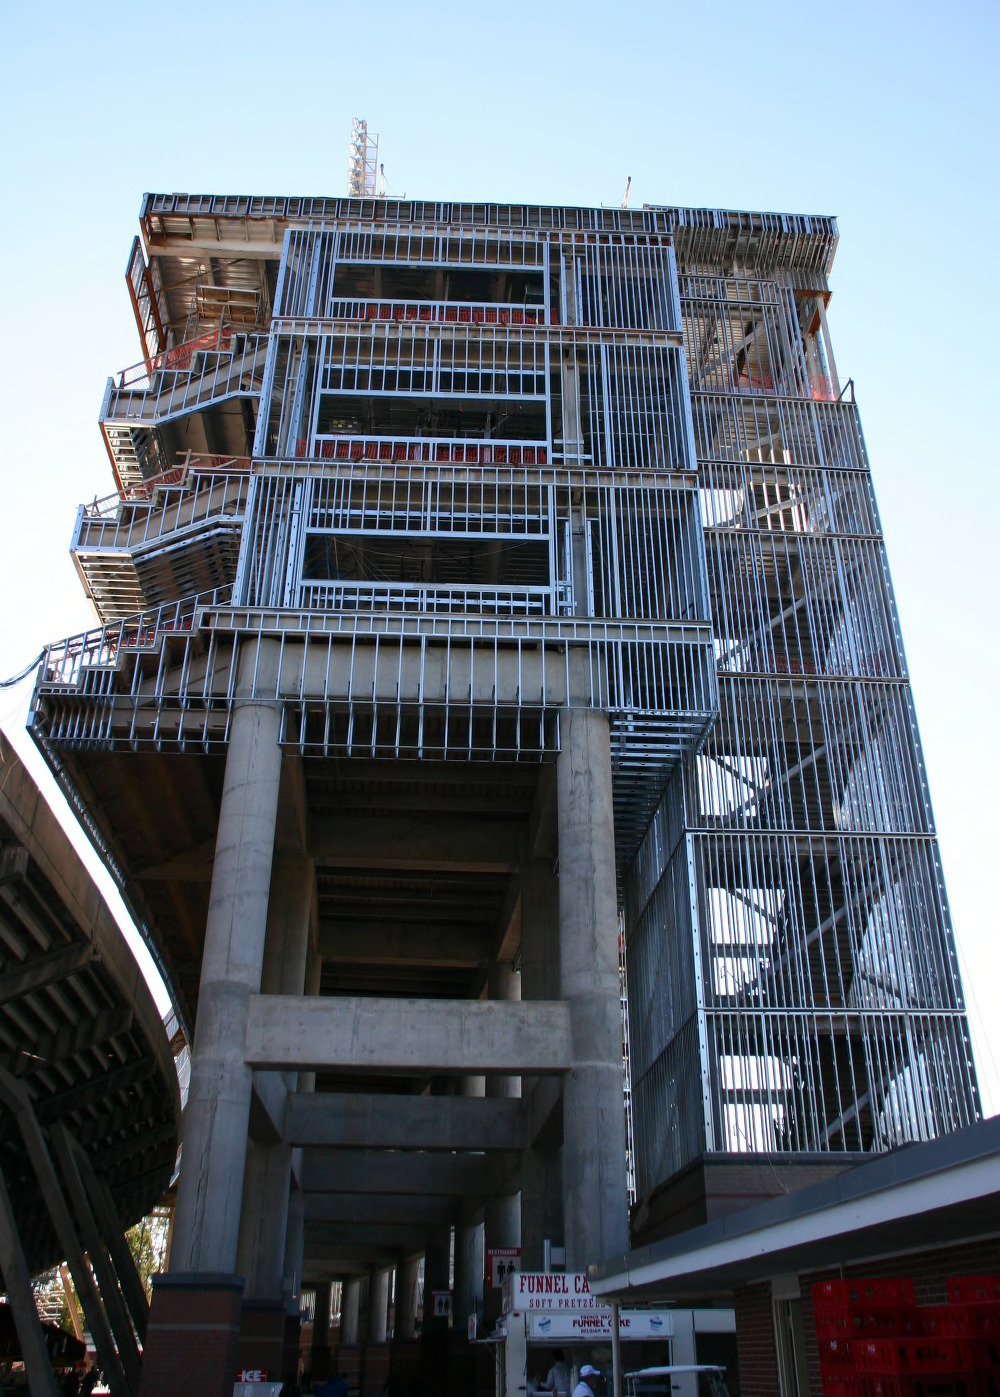 Carter-Finley Stadium, Vaughan Towers construction